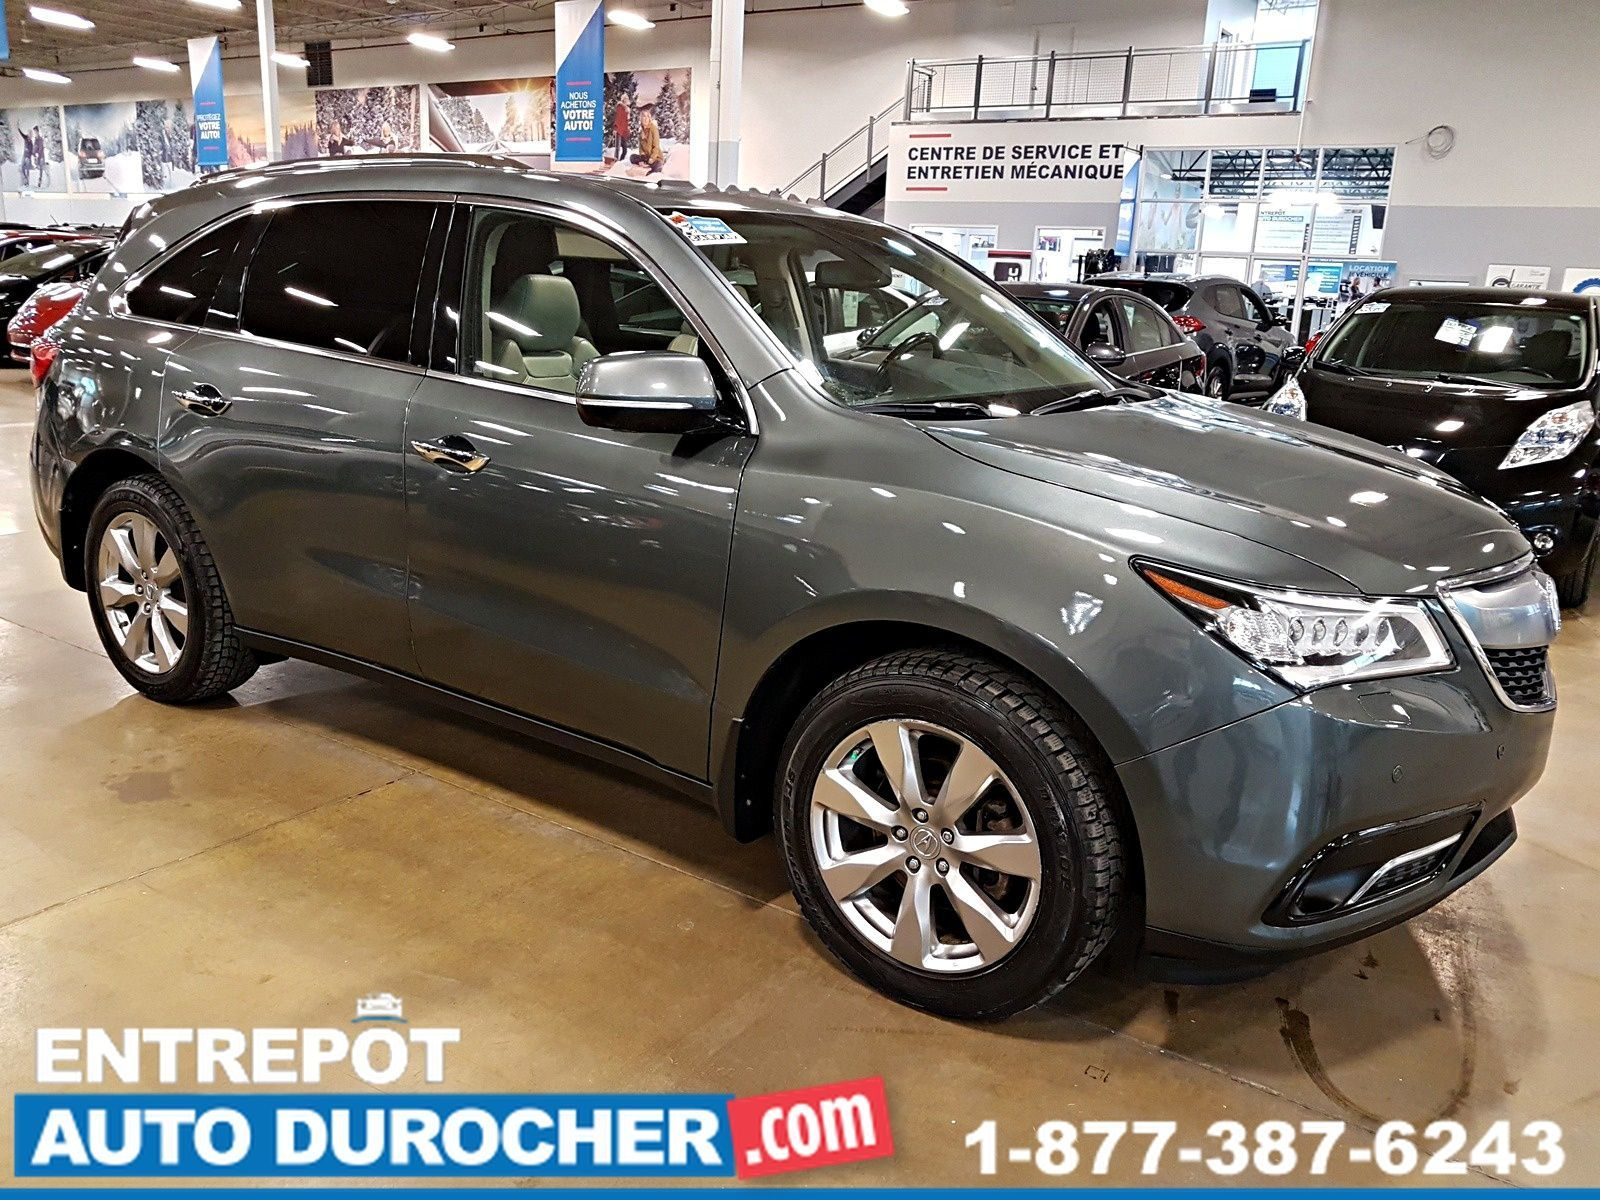 2015 Acura MDX ELITE 4X4 - NAVIGATION - LARGE DVD - 7 PASSAGERS - SUNROOF - HDMI